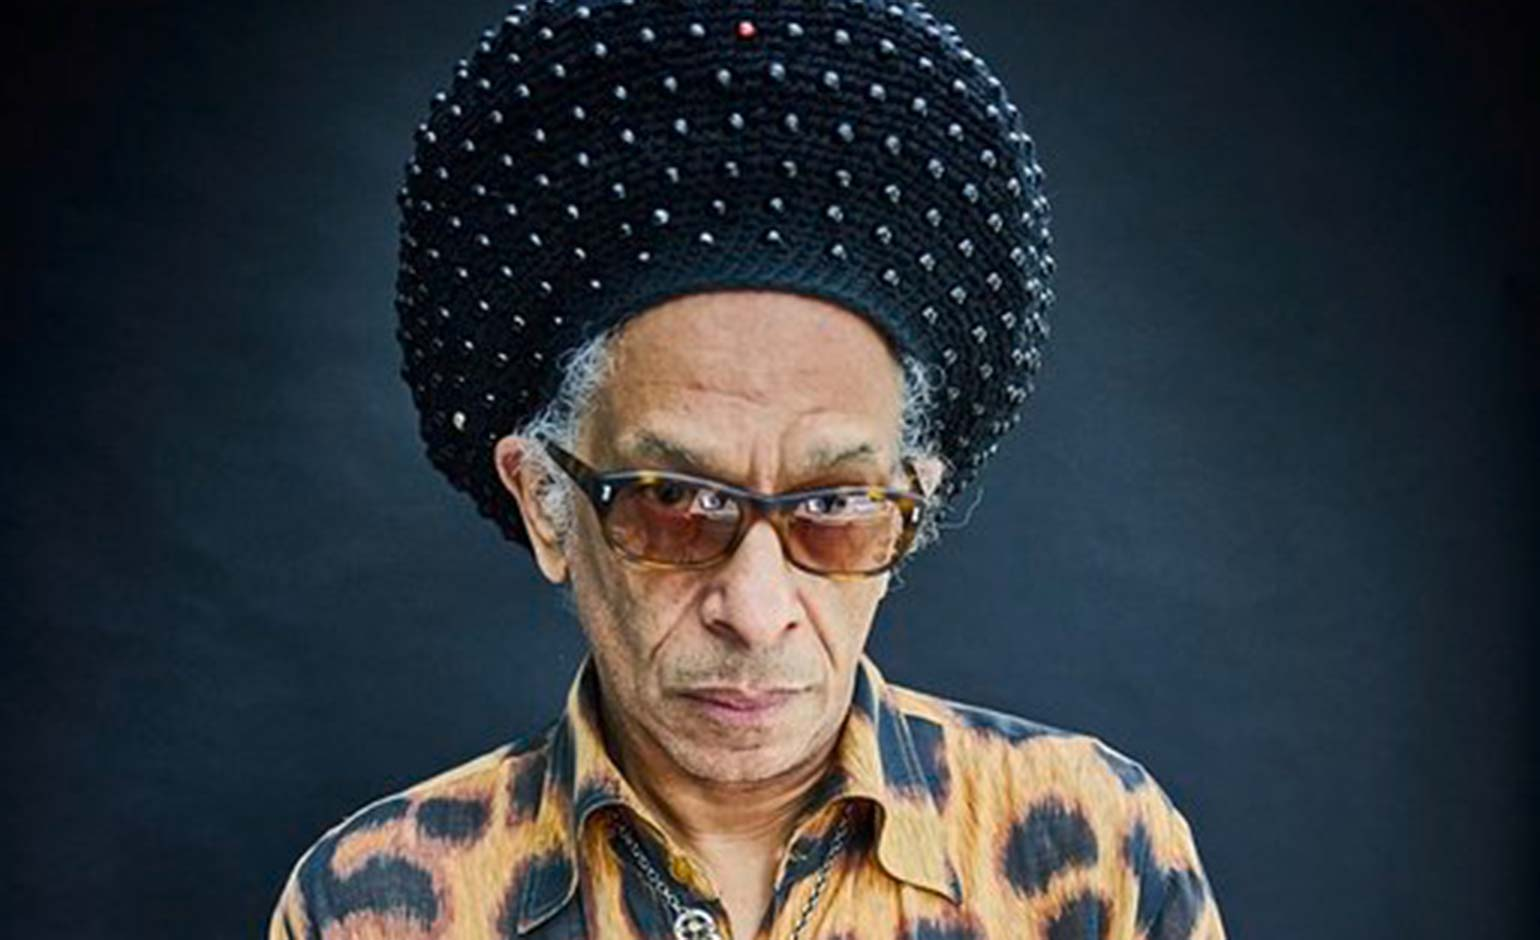 5. Don Letts